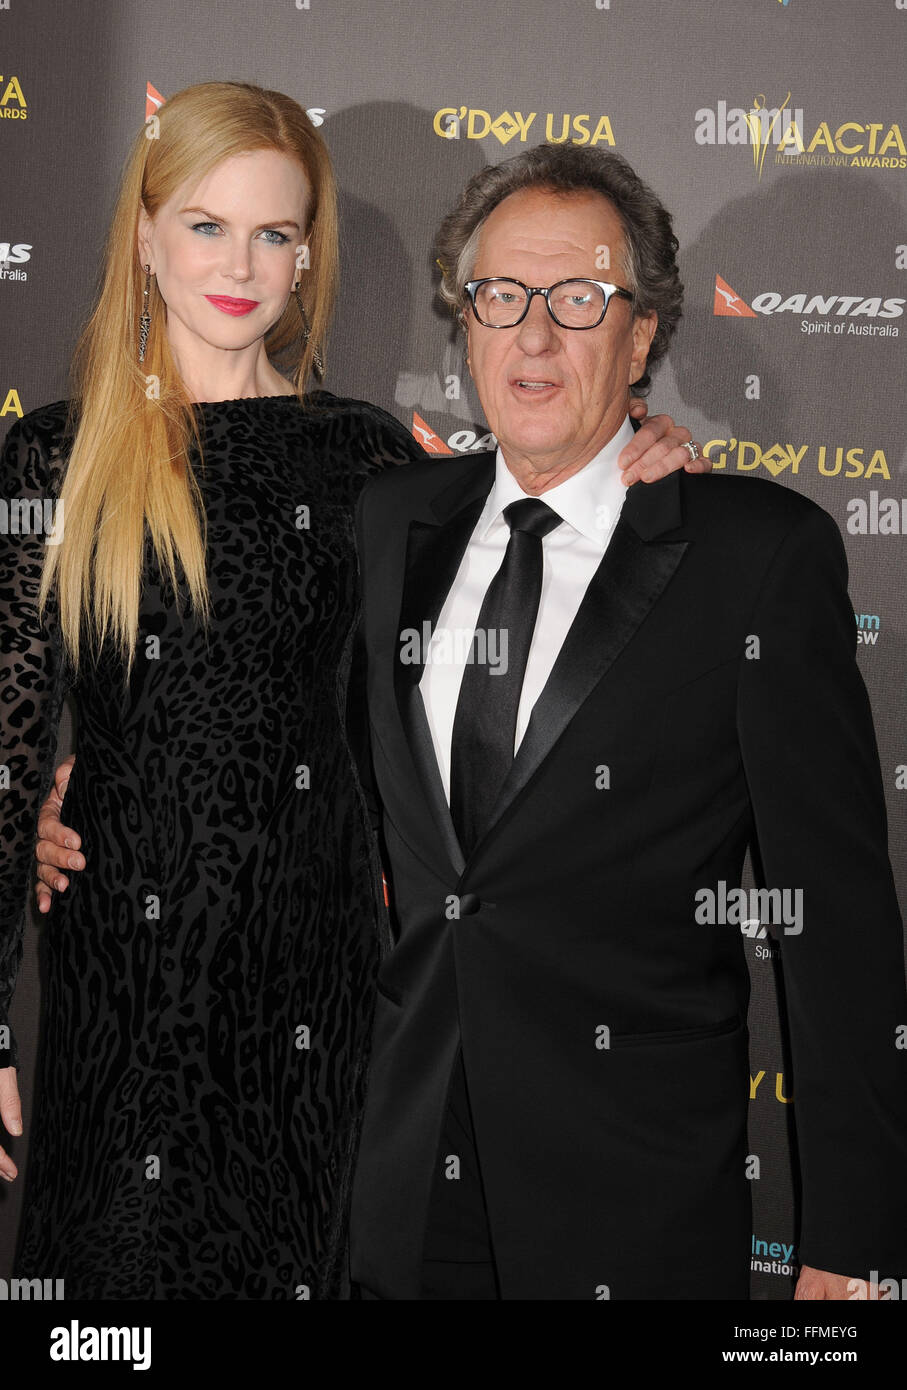 Actors Nicole Kidman (L) and Geoffrey Rush attend the 2015 G'Day USA Gala featuring the AACTA International - Stock Image